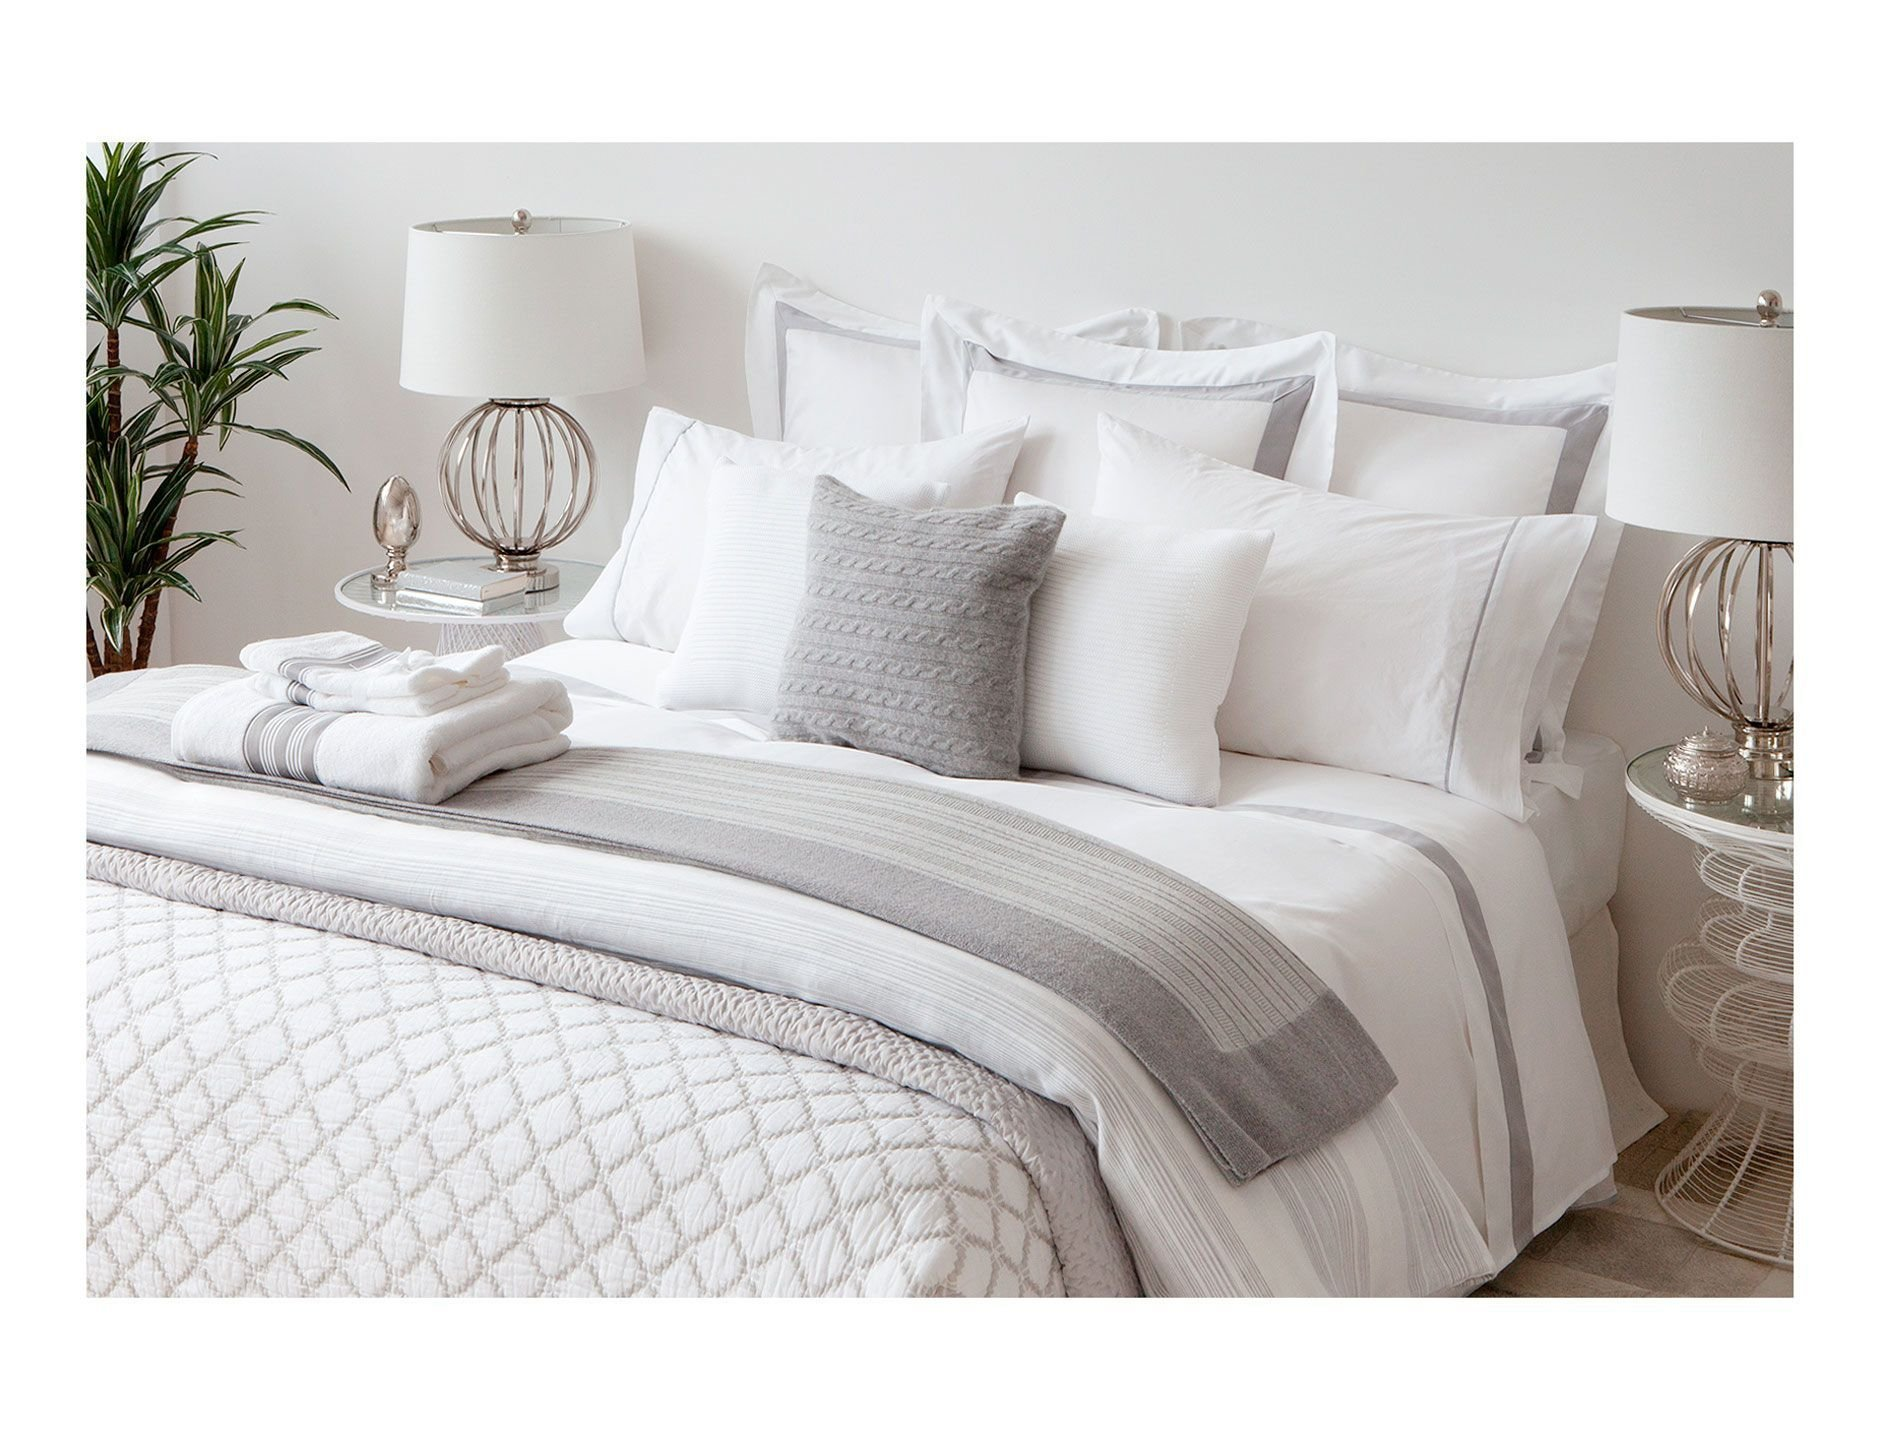 Best Inspiration Zara Home United States Of America Bedroom Pinterest United States With Pictures